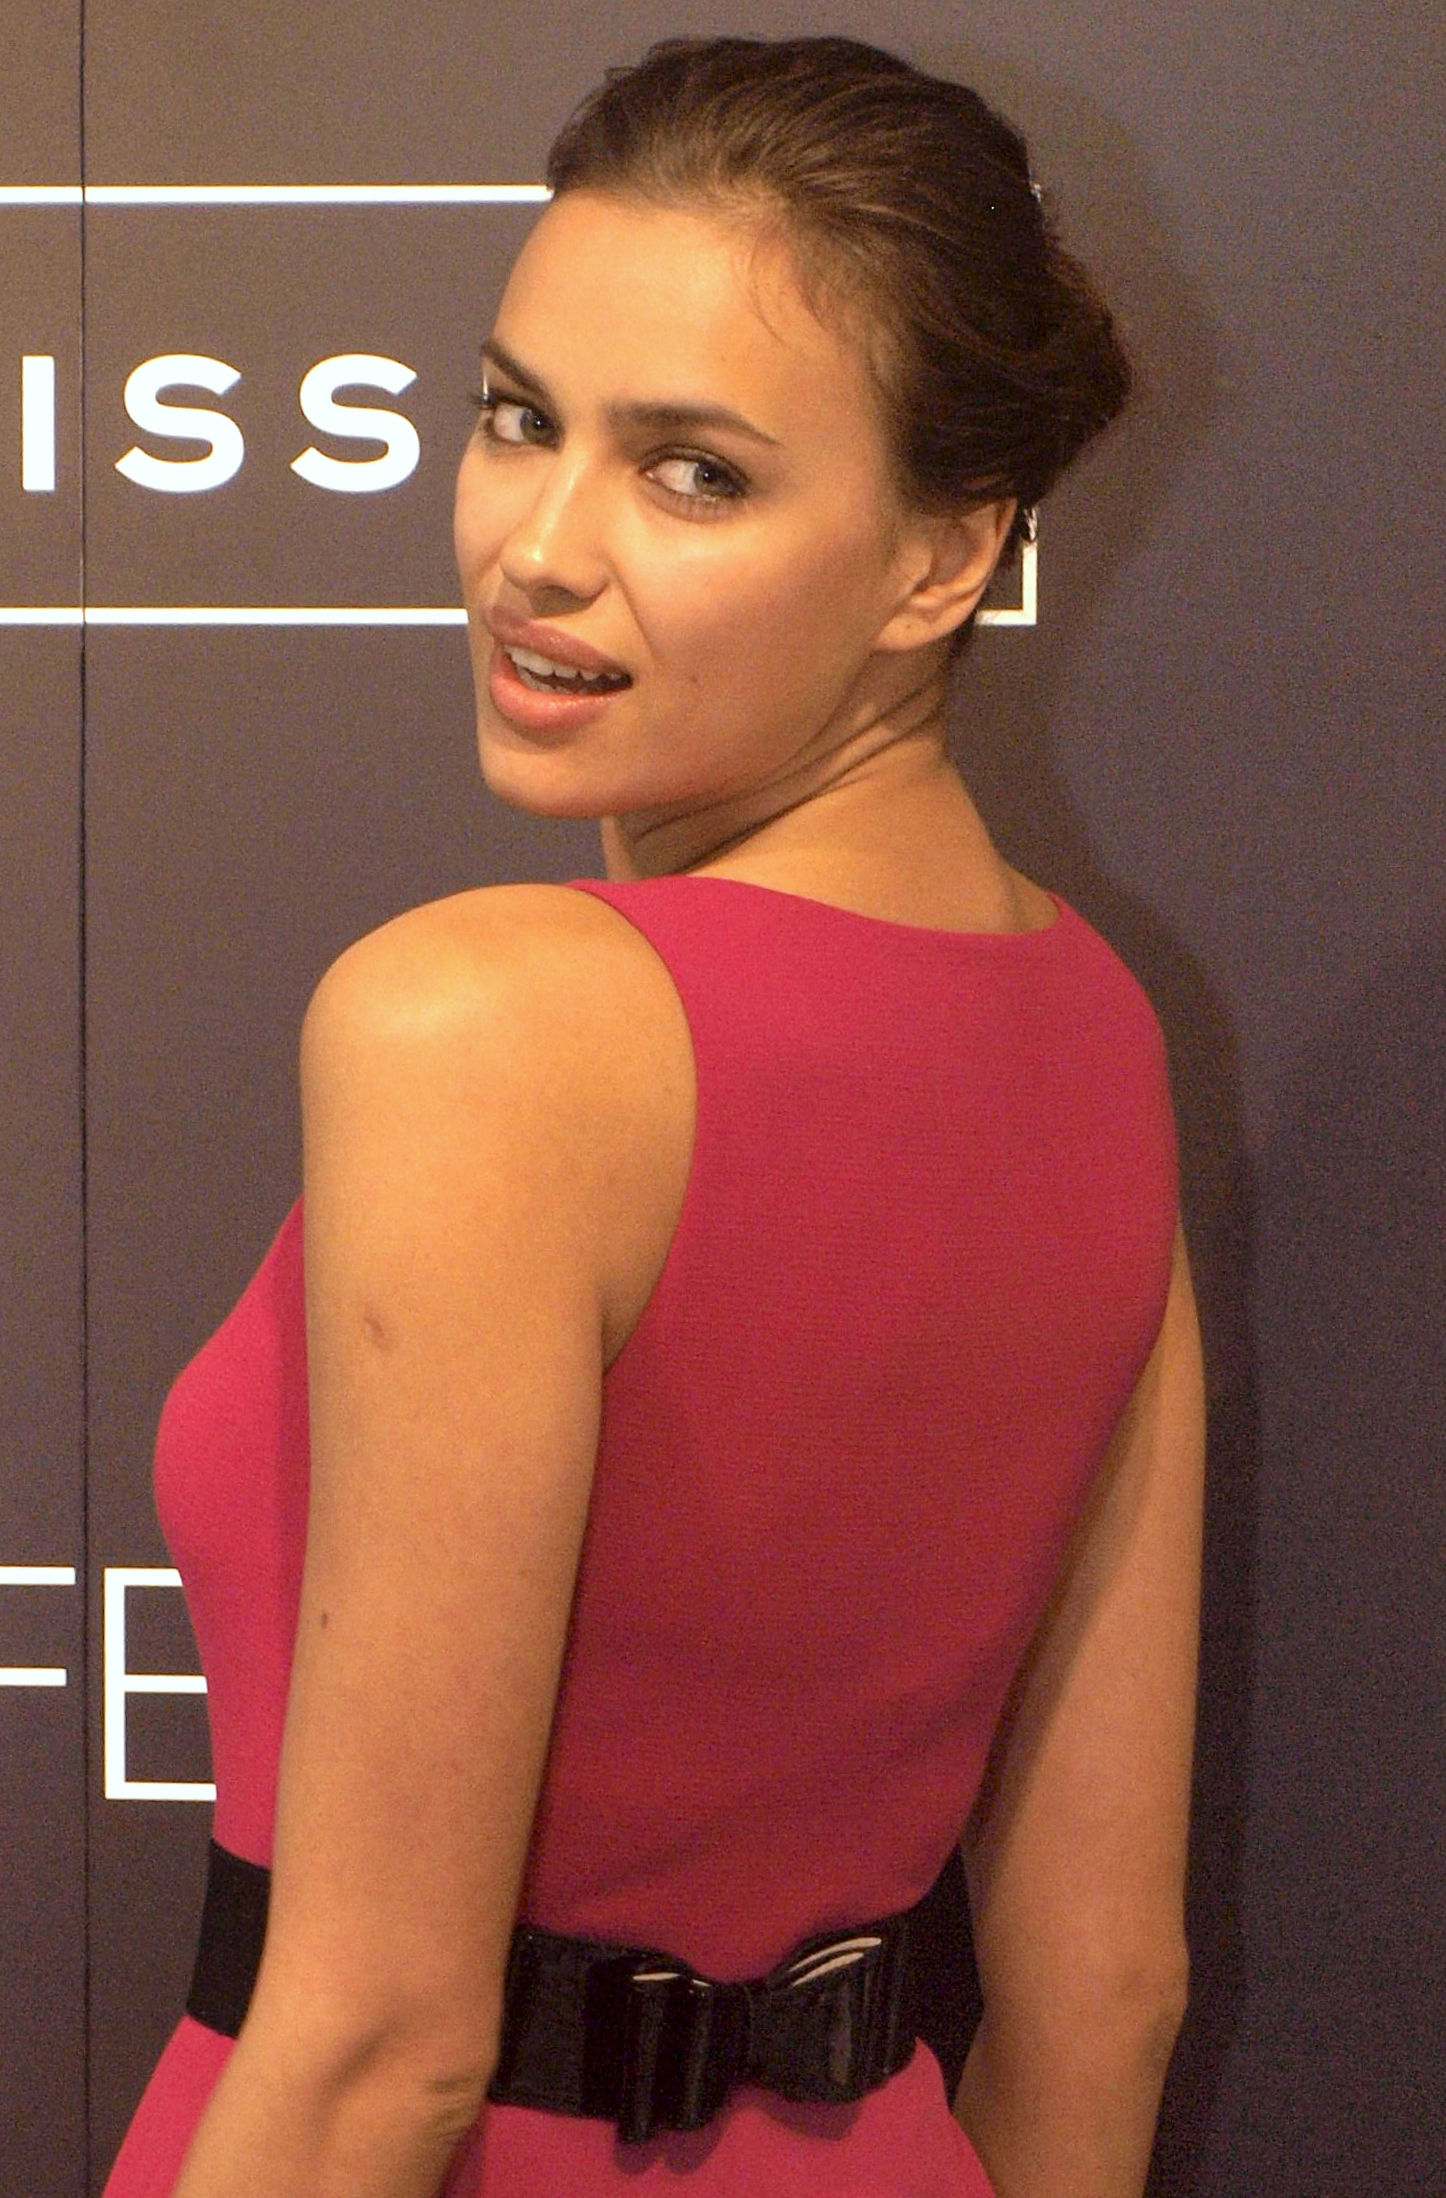 Irina Shayk - Wikipedia, the free encyclopedia